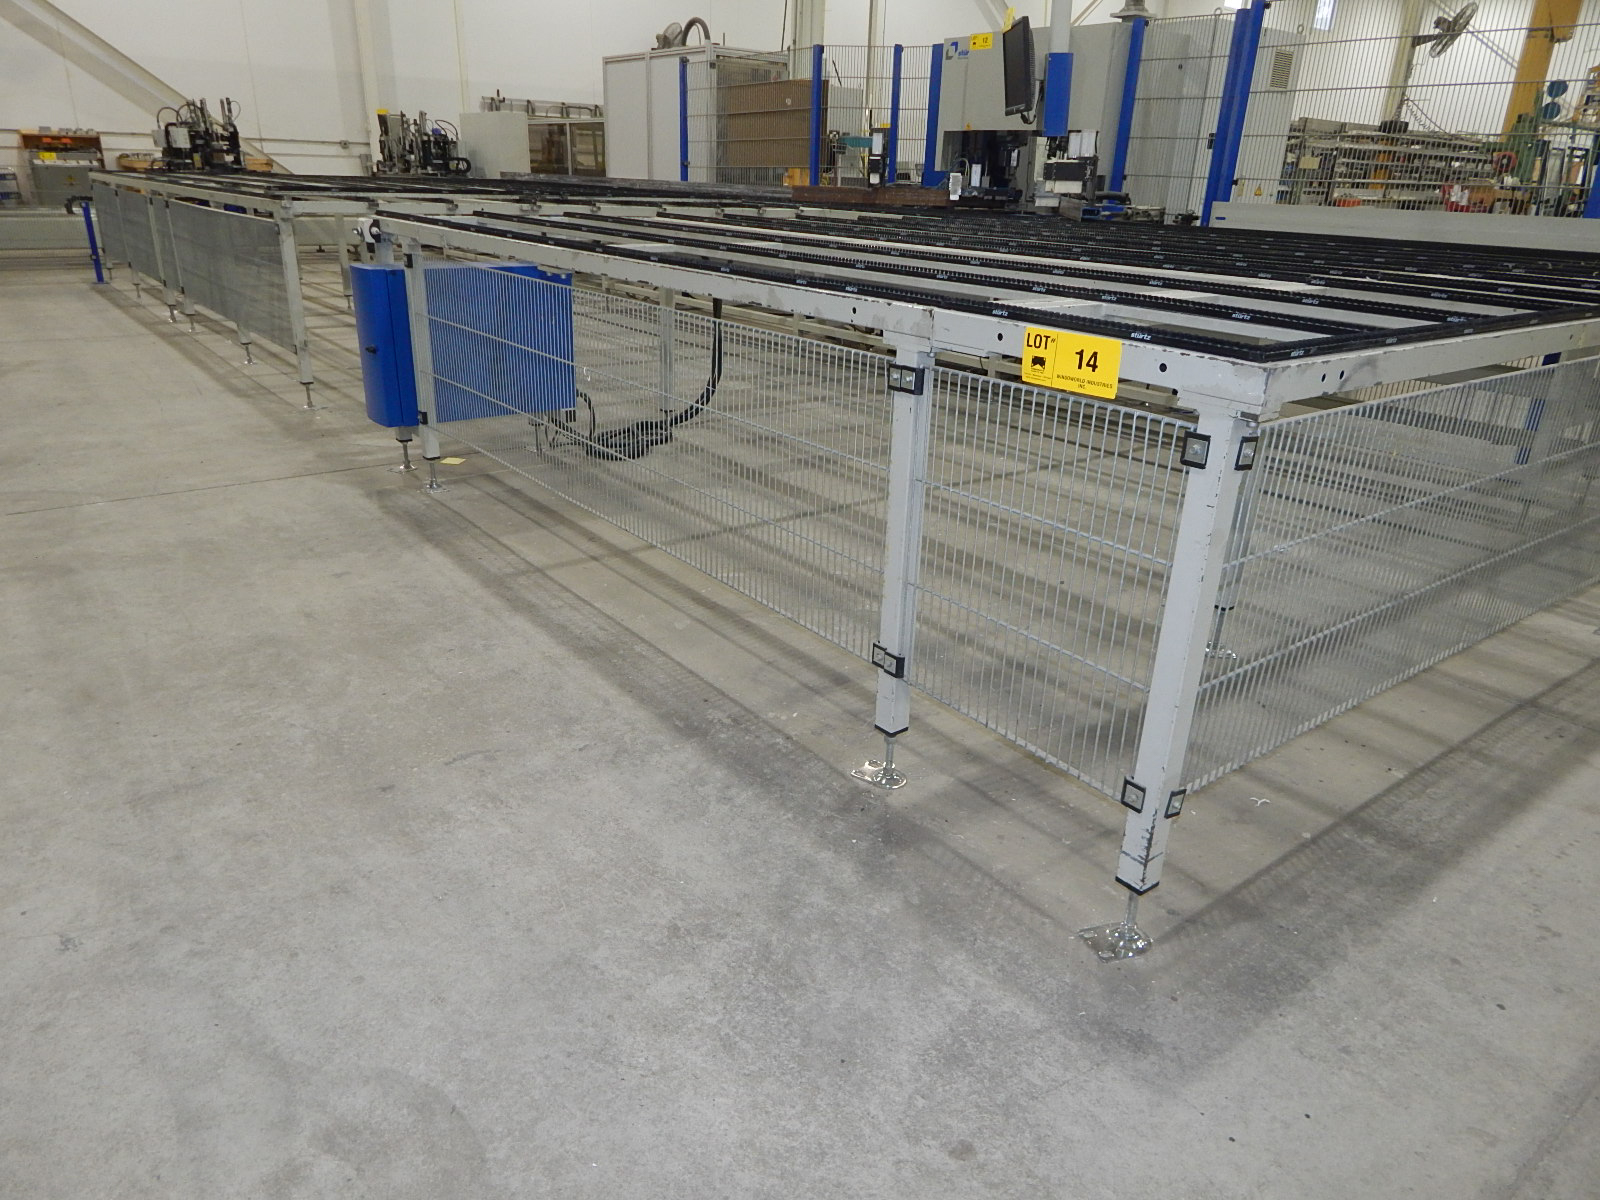 "STURTZ APPROX. 150""X450"" FIXED TABLE WITH BRISTLE BRUSH ASSIST, SAFETY CAGE, CONTROLS AND - Image 2 of 2"